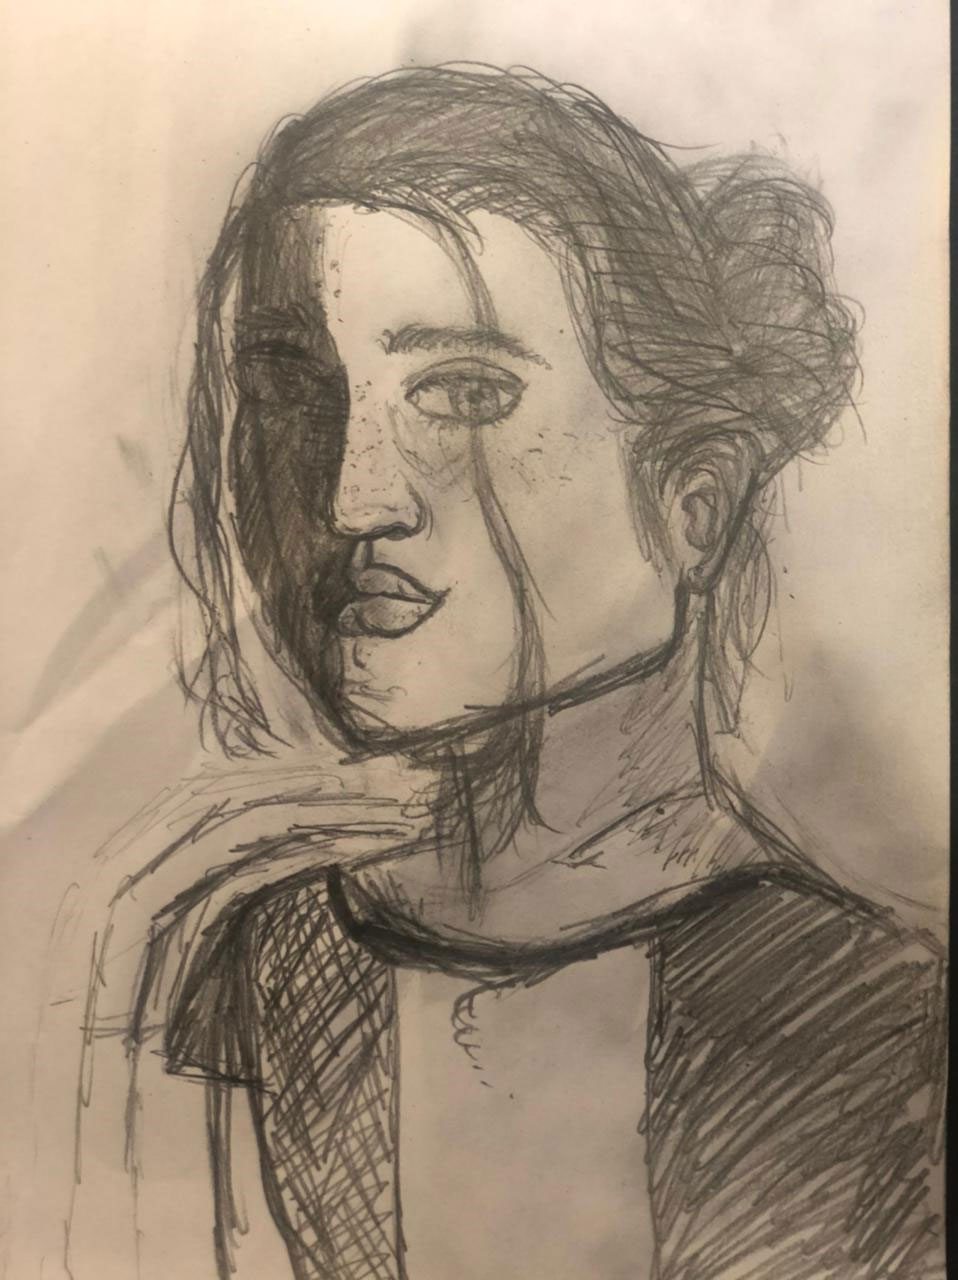 A self-portrait of a girl